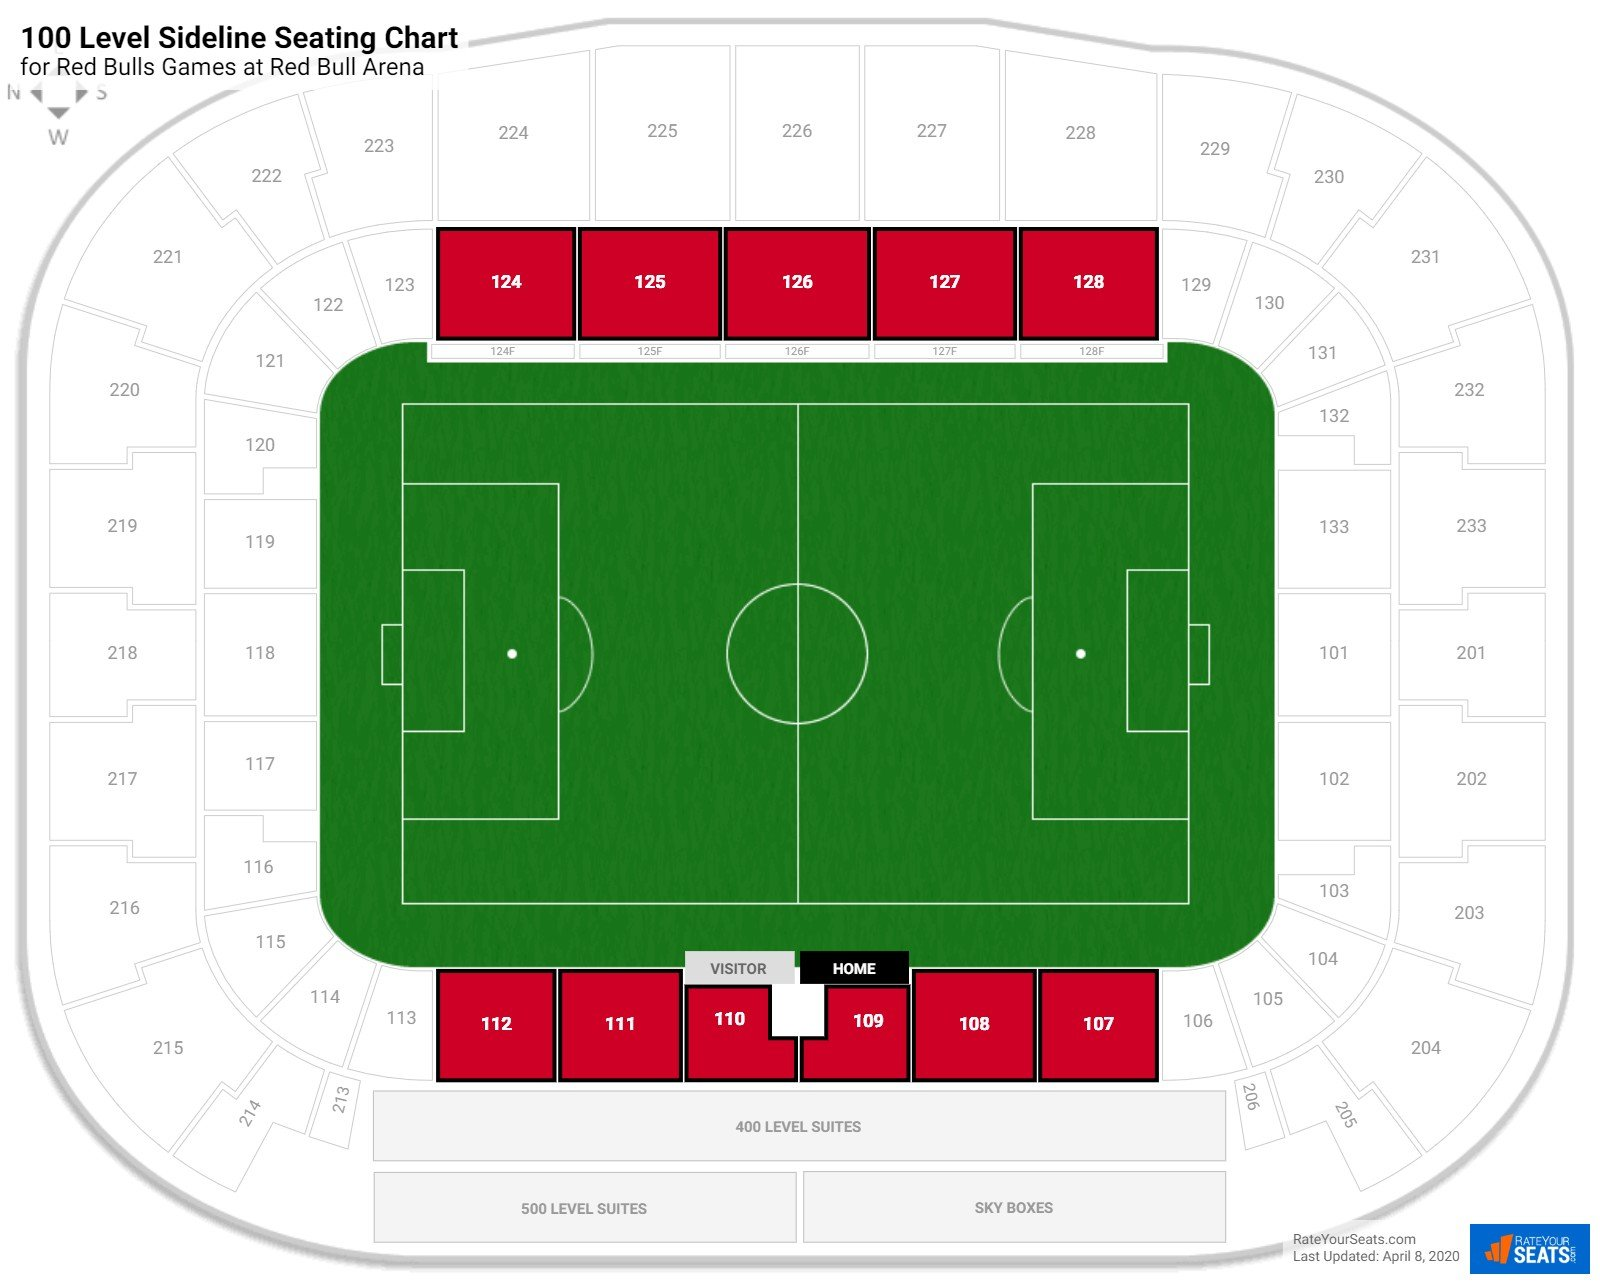 Red Bull Arena 100 Level Sideline Seating Chart